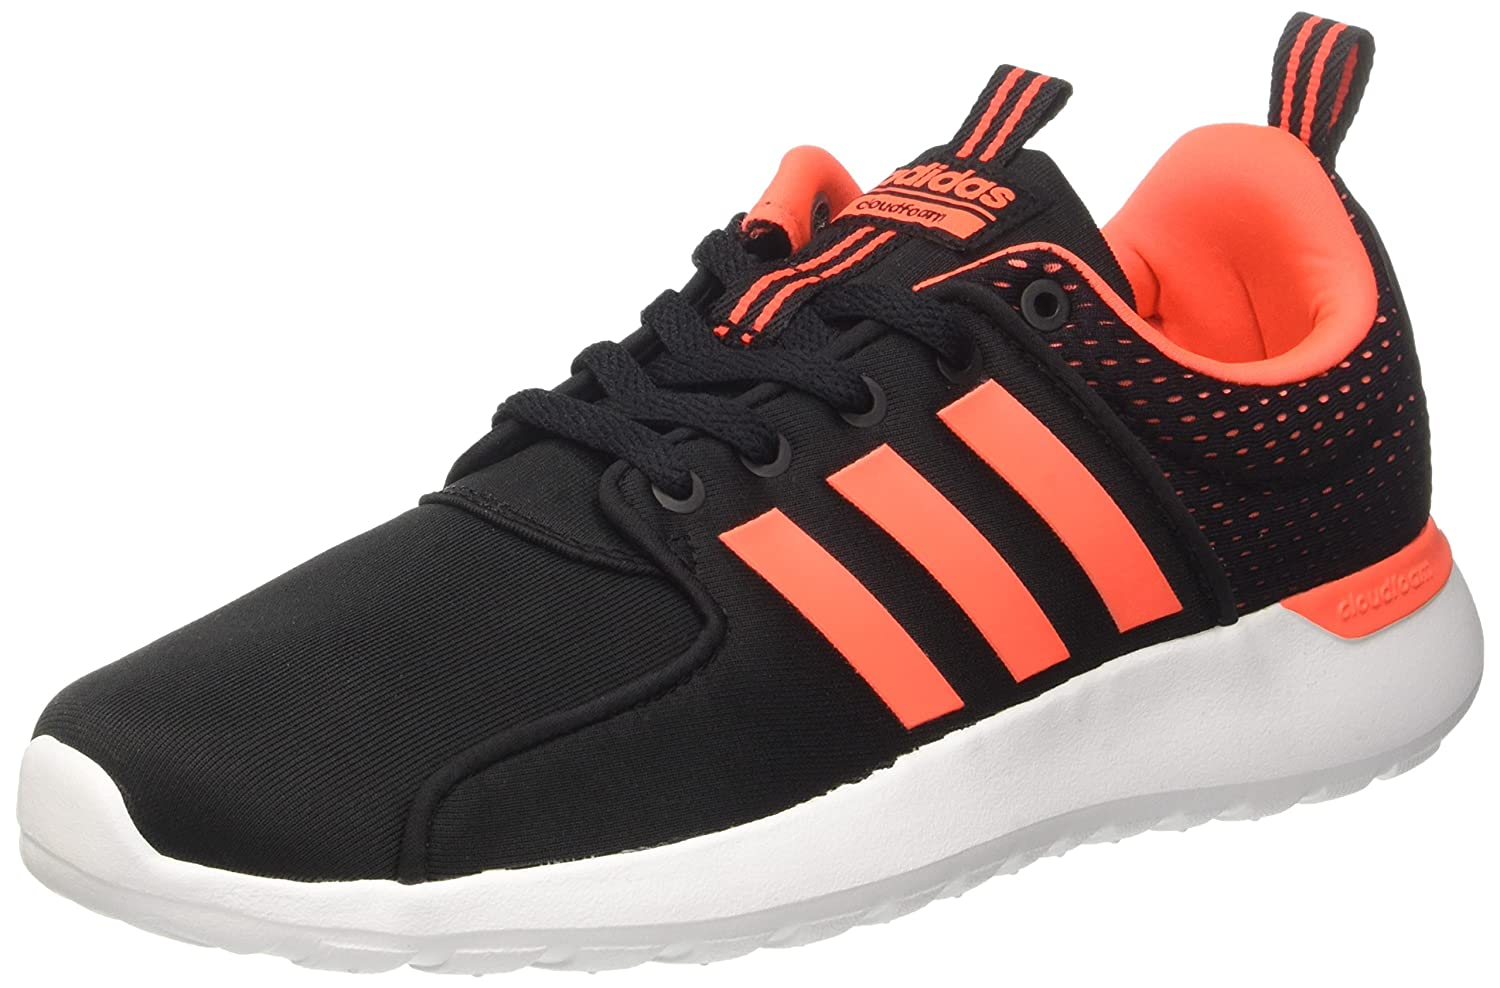 d0526d4a734b Adidas Men s Cf Lite Racer Running Shoes  Buy Online at Low Prices in India  - Amazon.in